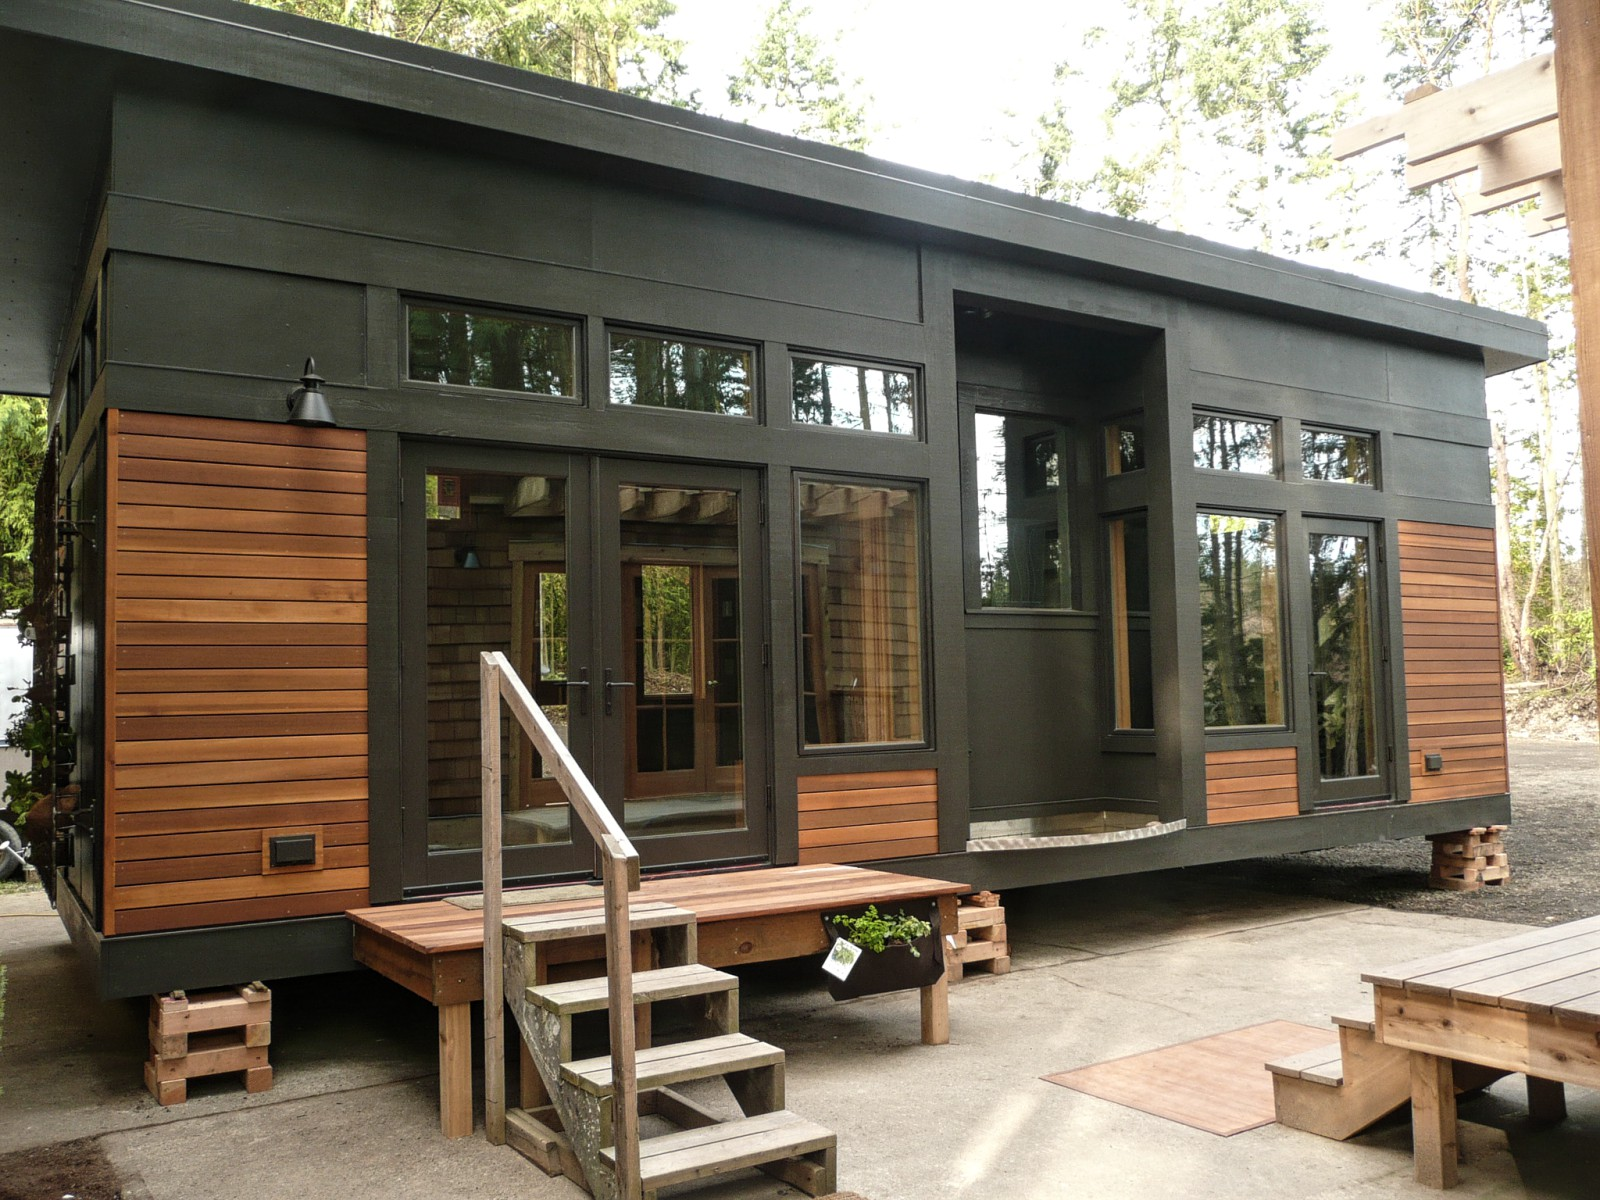 The Waterhaus, A Tiny Sustainable Prefab Designed For A Healthy Indoor  Environment. It Has